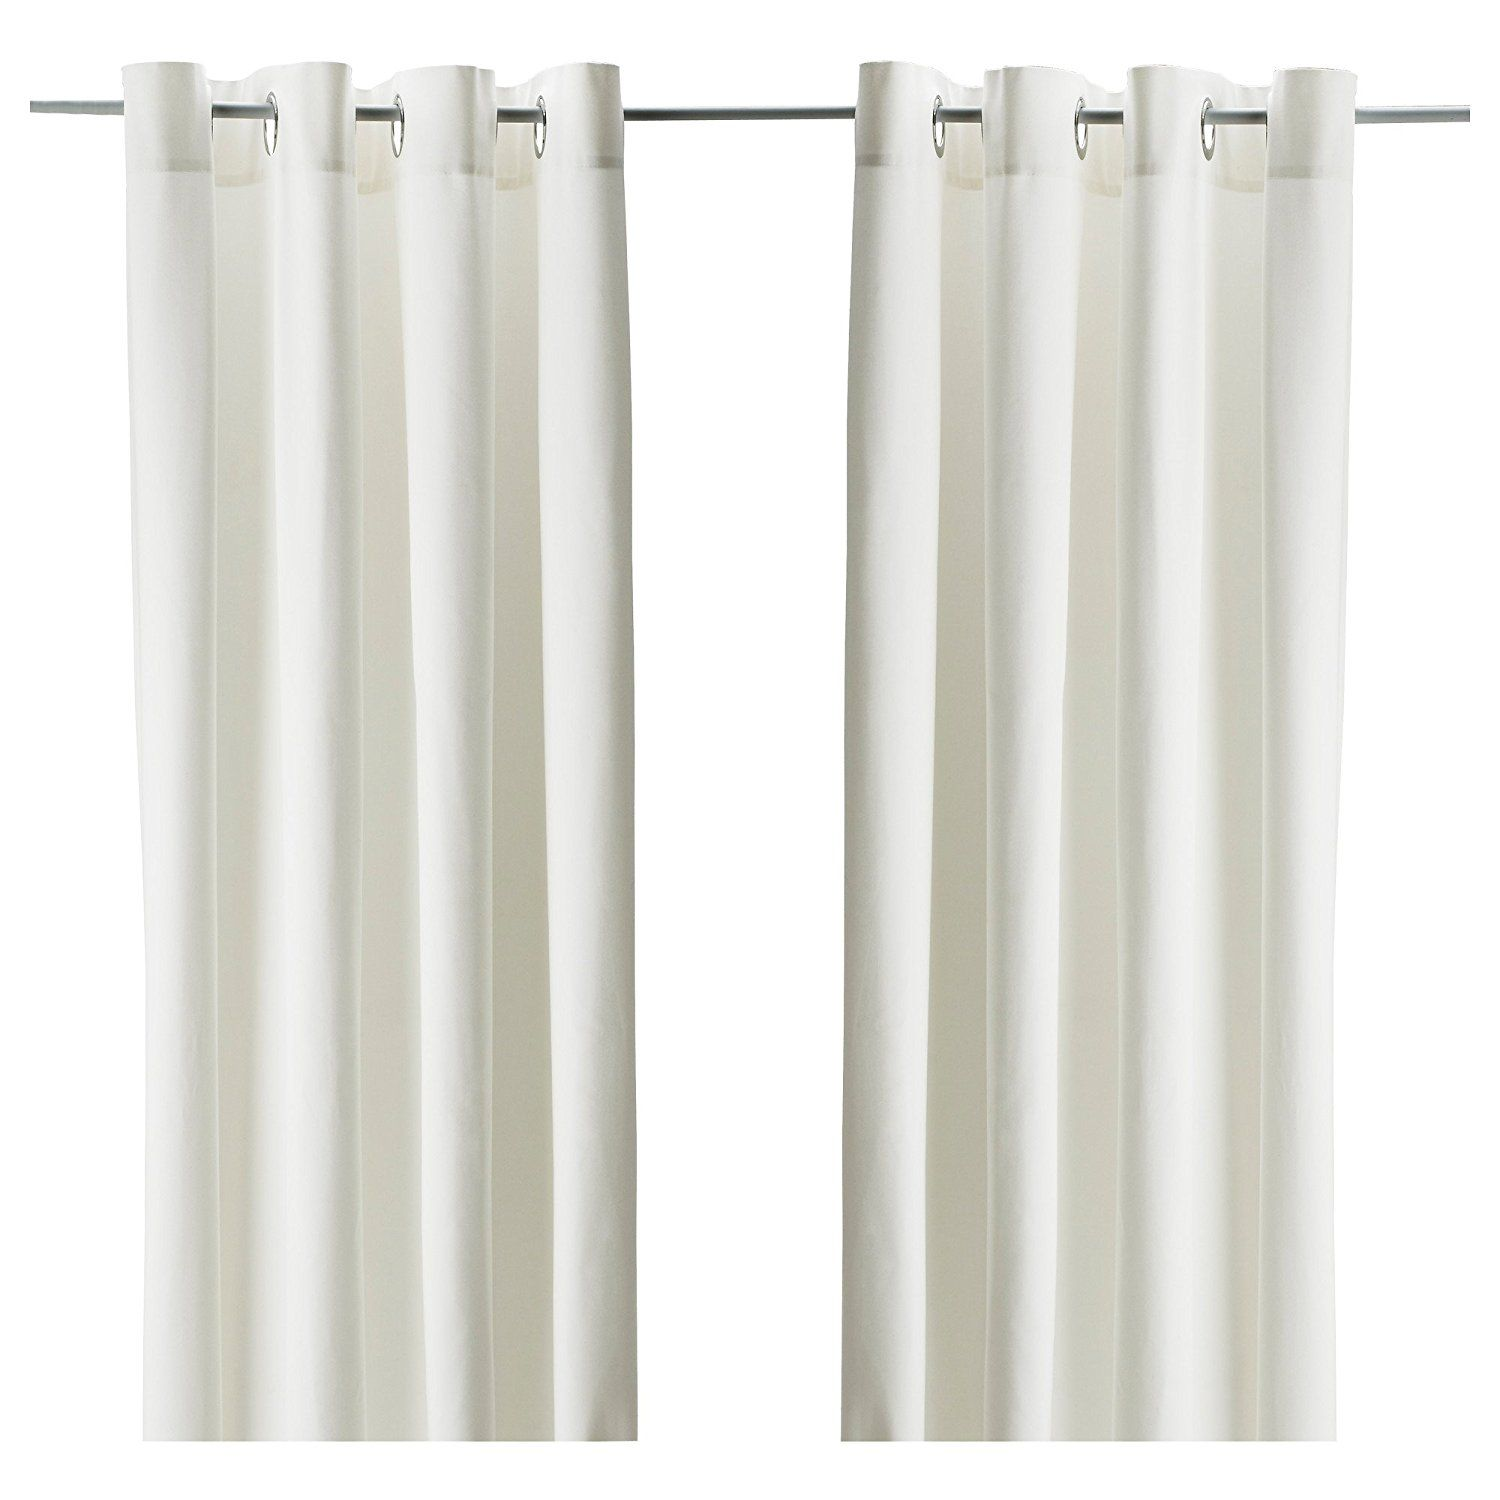 Bunk bed curtains ikea the curtains are four lenda - Ikea Merete Curtains 1 Pair Cm The Thick Curtains Darken The Room And Provide Privacy By Preventing People Outside From Seeing Into The Room